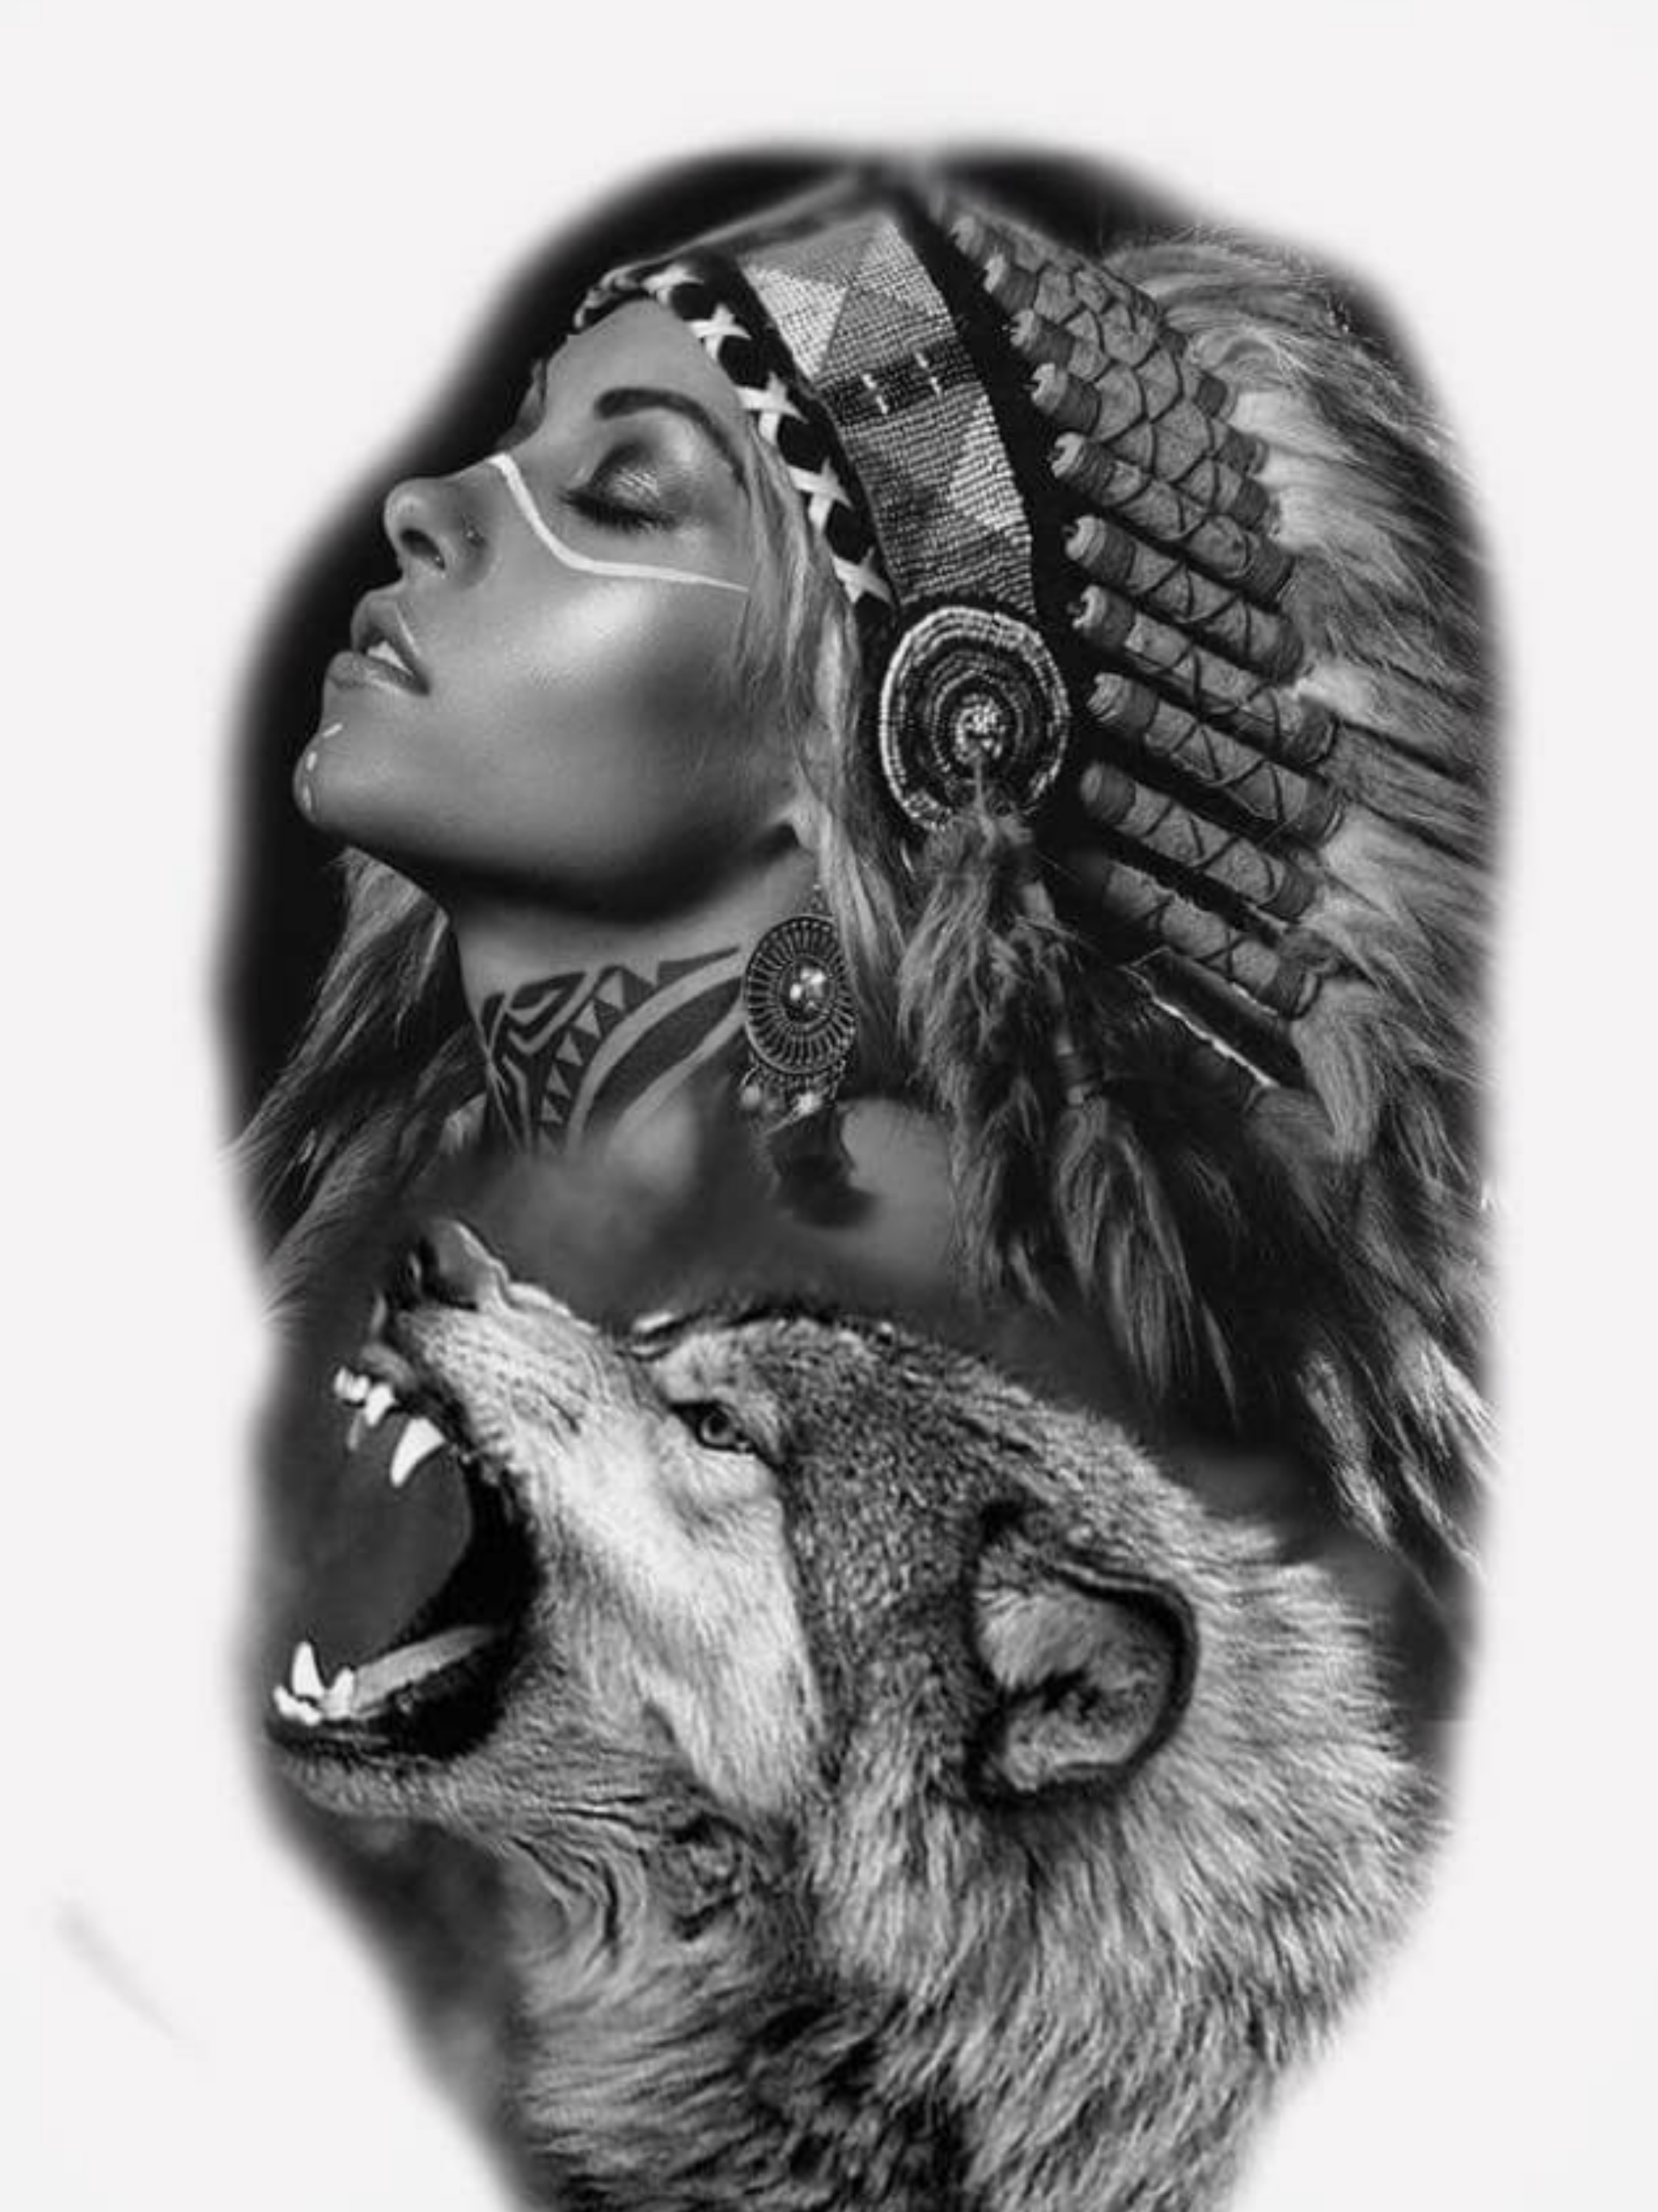 Pin By Abbie On Stuff To Buy Native American Tattoos Indian Tattoo Native Tattoos